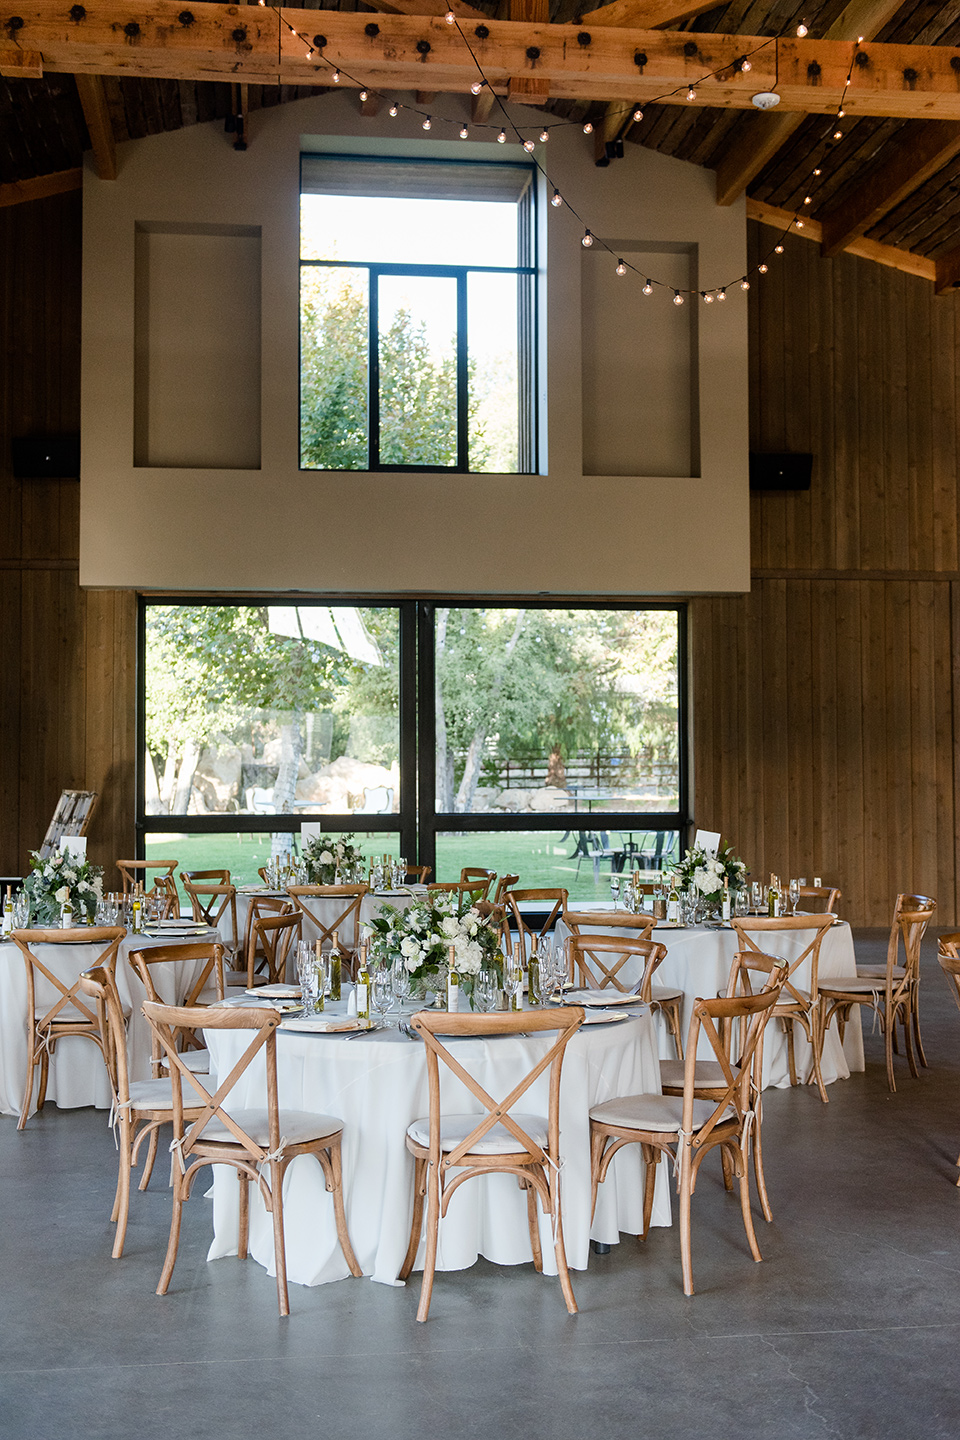 gallaway-downs-wedding-receptin-setu-with-white-linens-and-gold-chairs